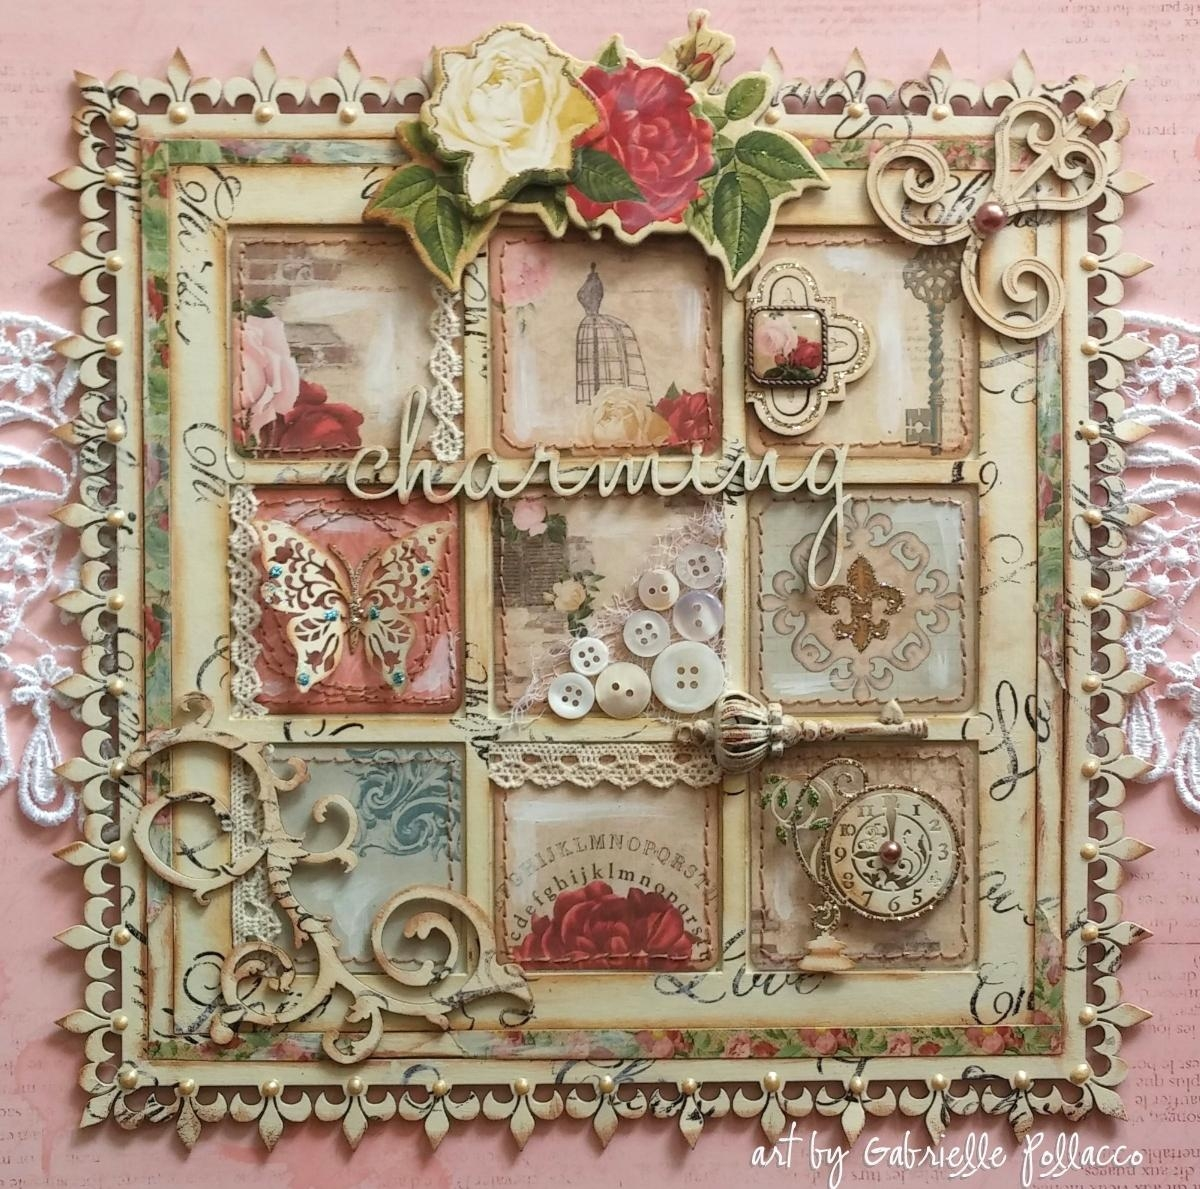 Bobunny: Shabby Chic Juliet Wall Art Pertaining To Shabby Chic Wall Art (View 3 of 20)